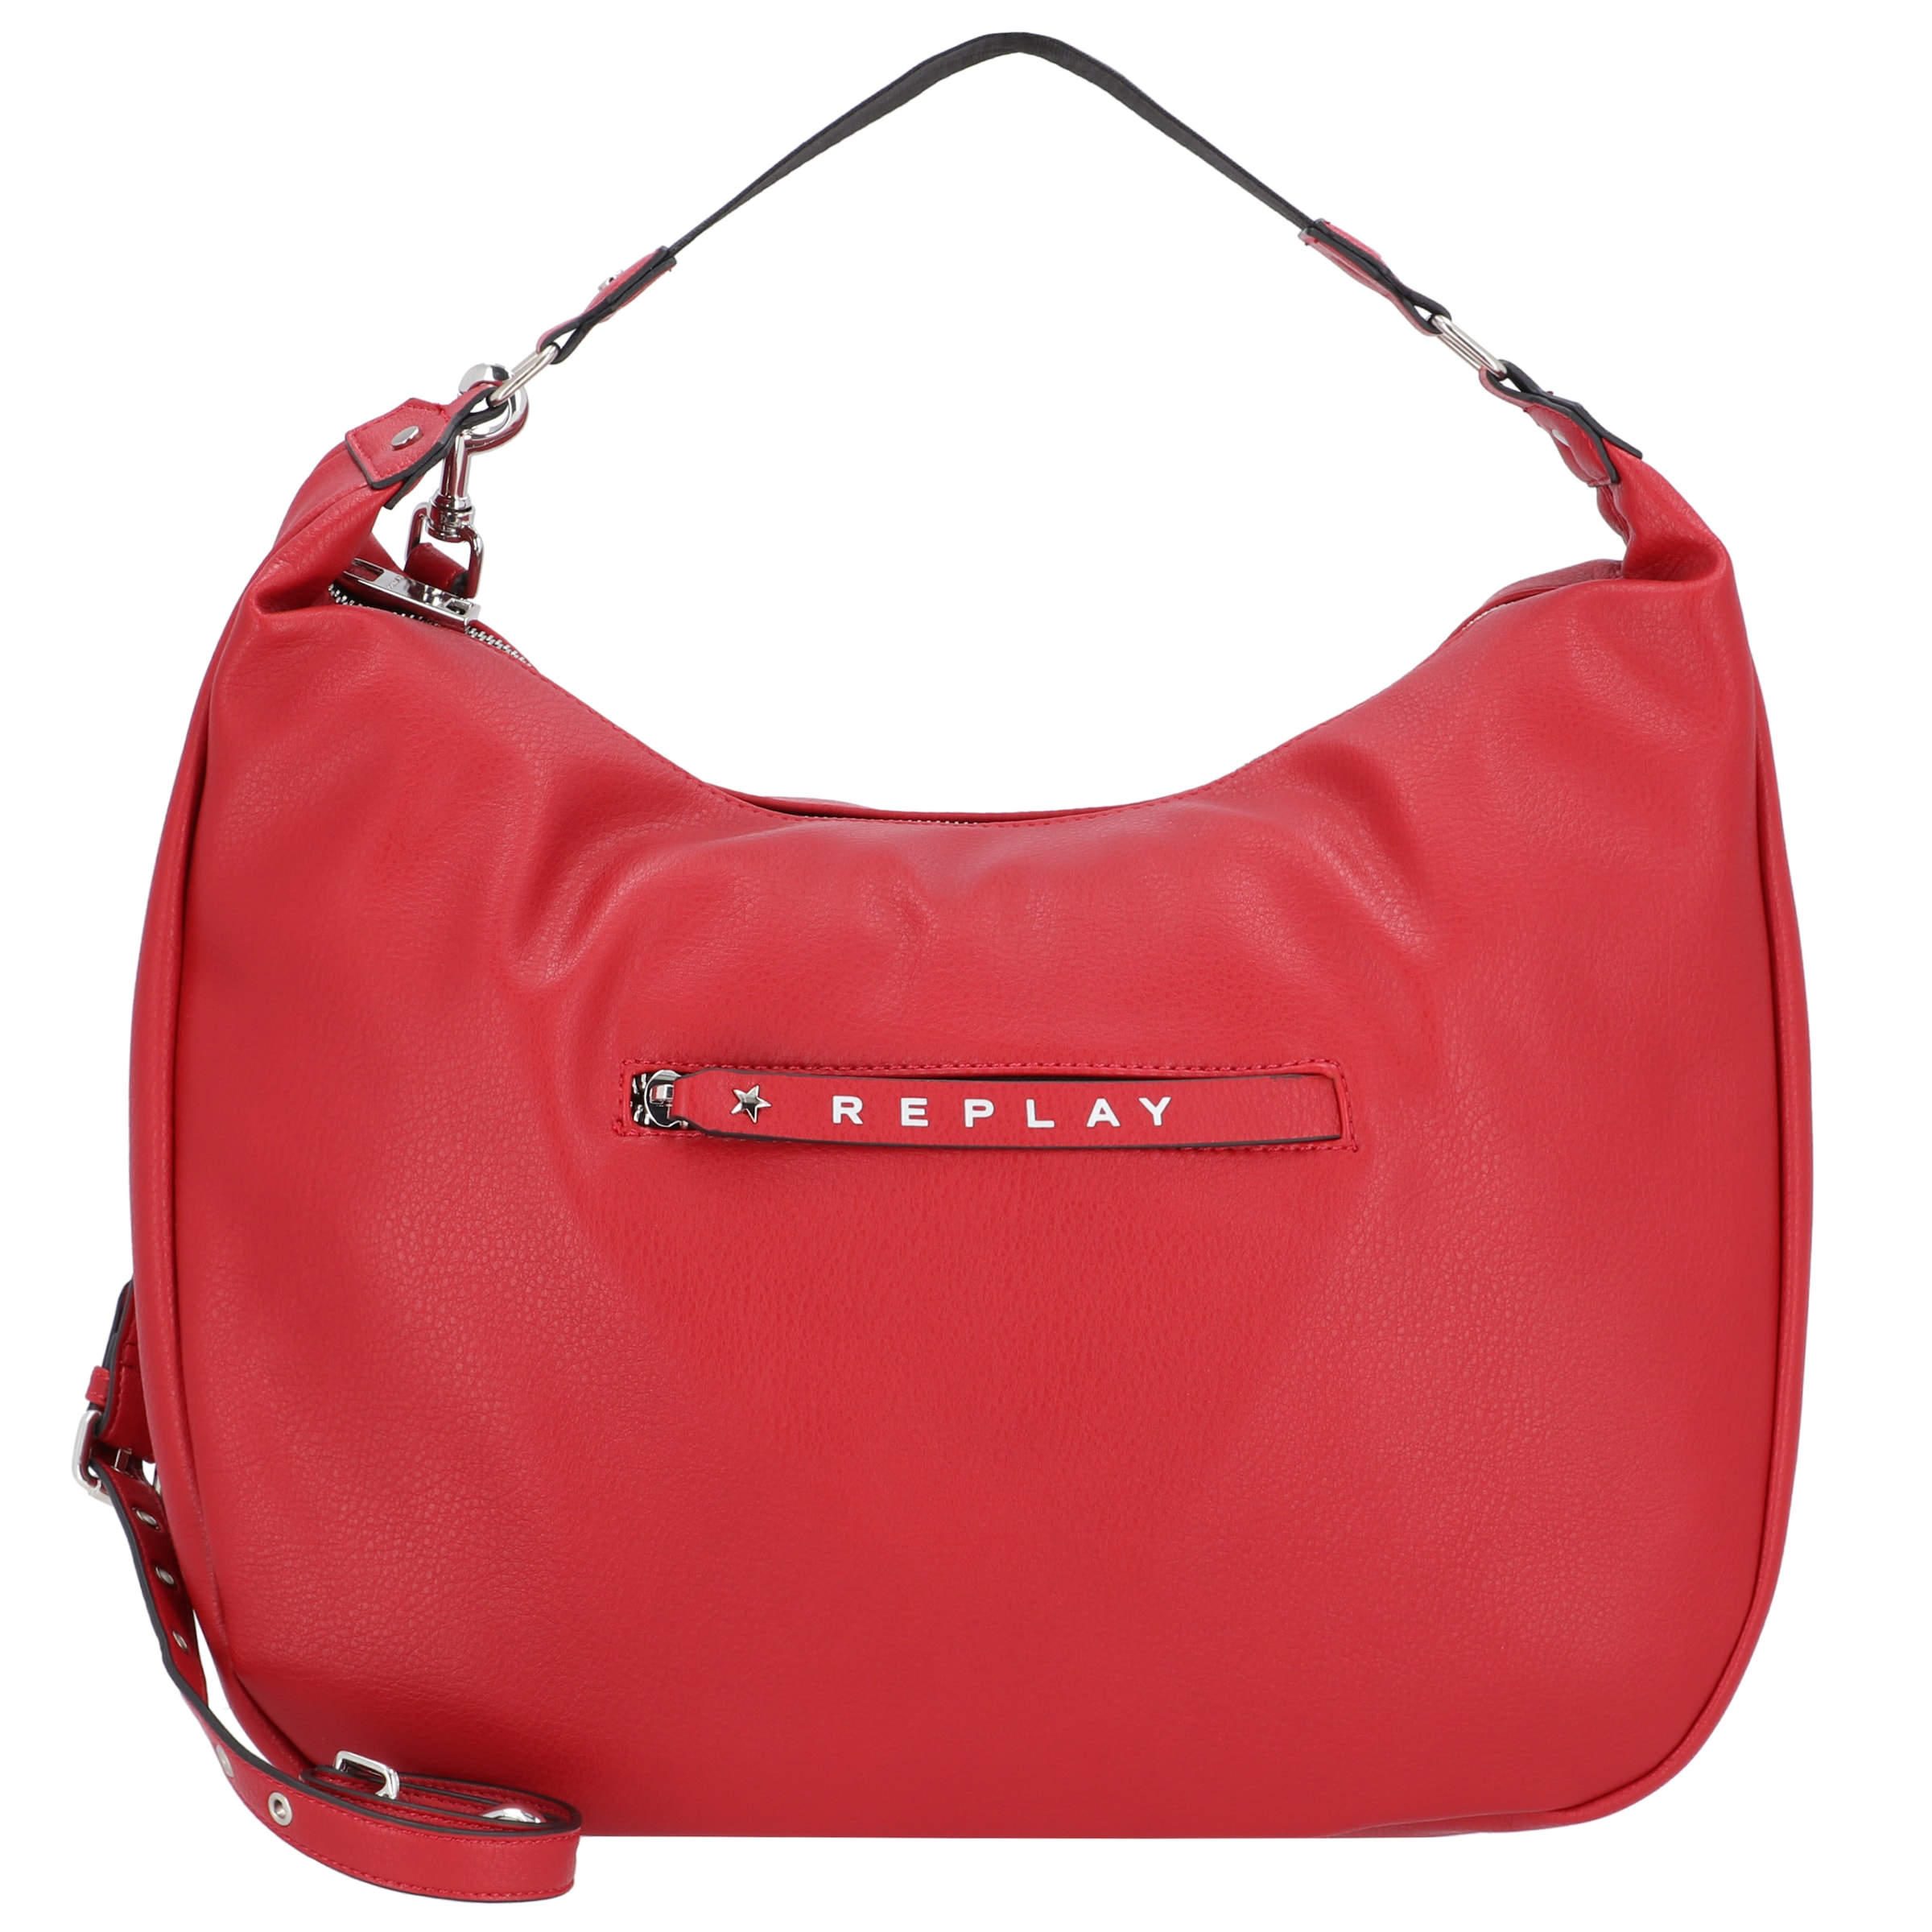 Replay Schultertasche Replay Rot In In Schultertasche HIYED9W2